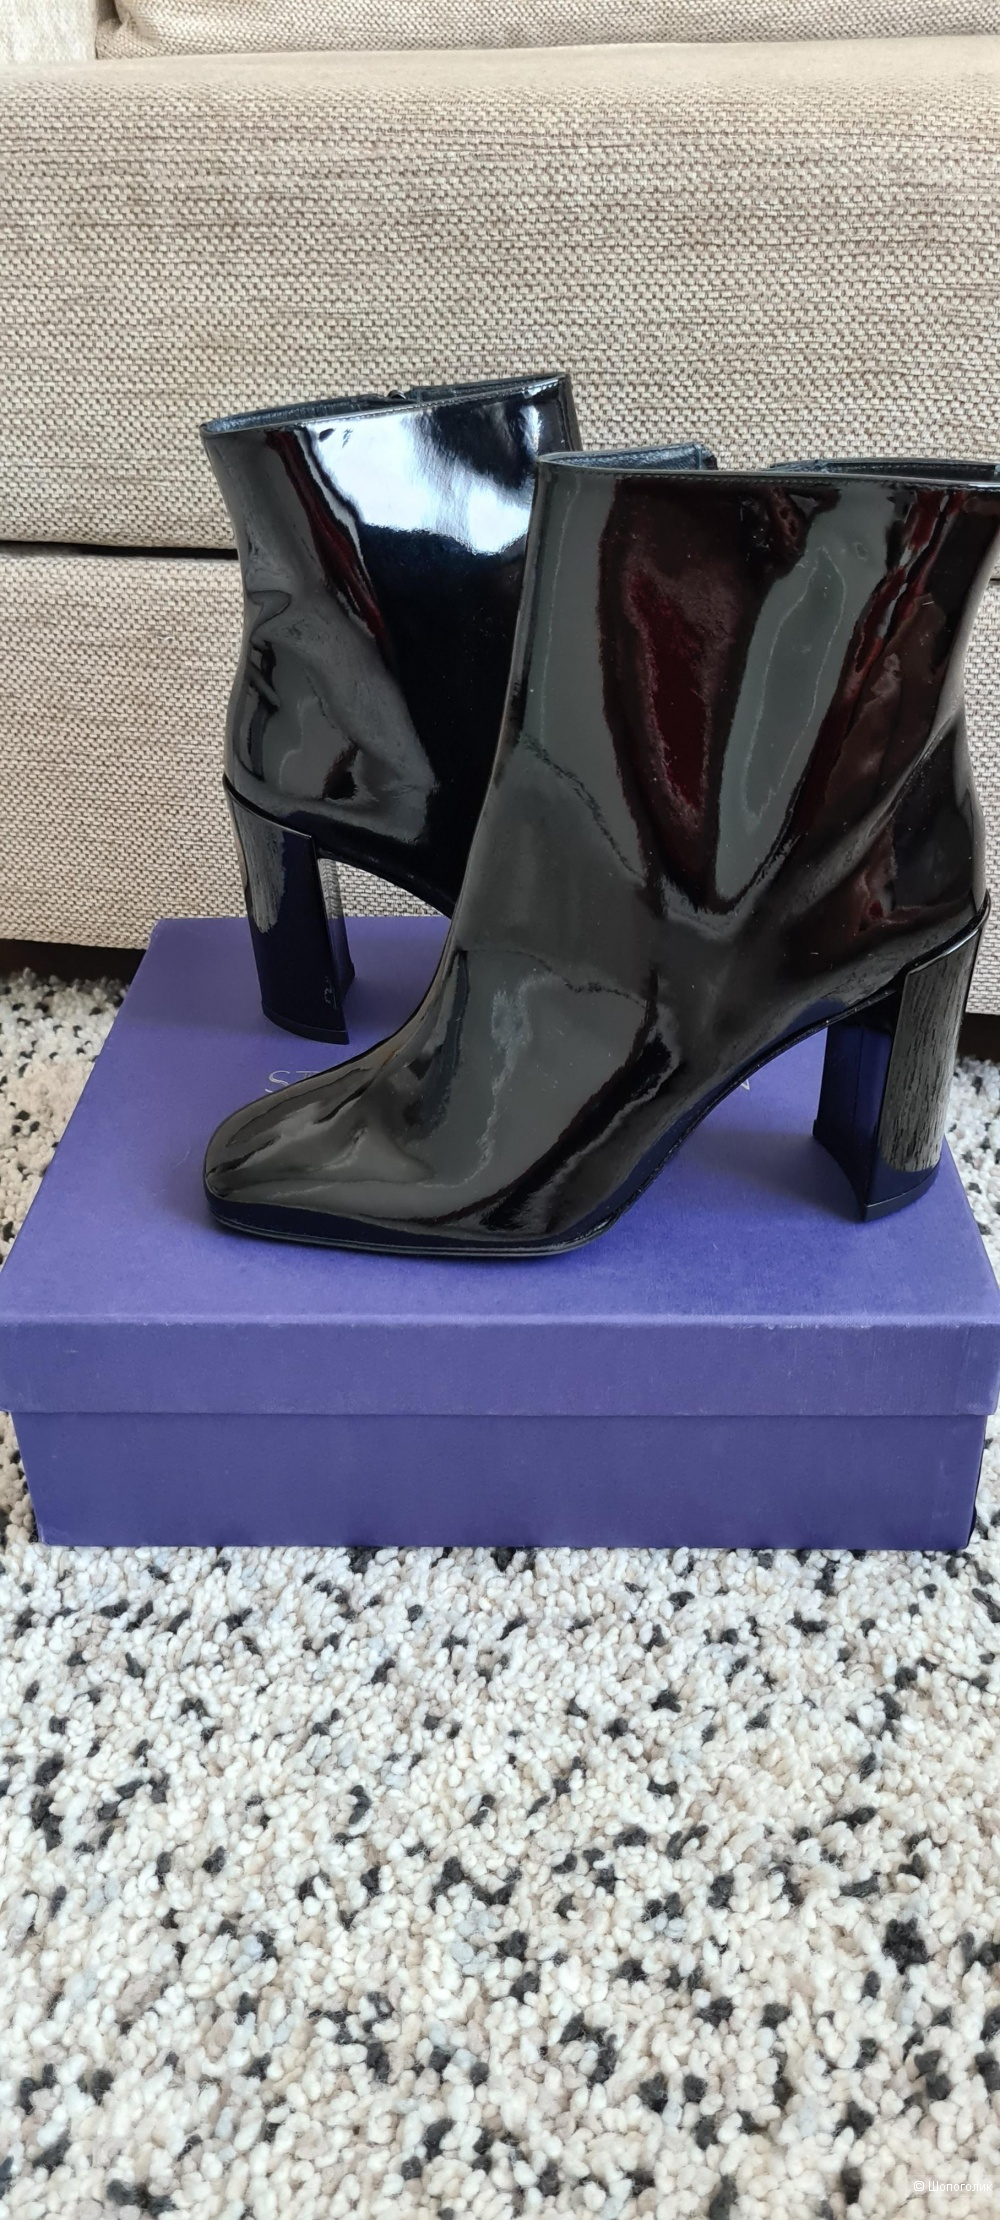 STUART WEITZMAN Patent-leather ankle boots,39